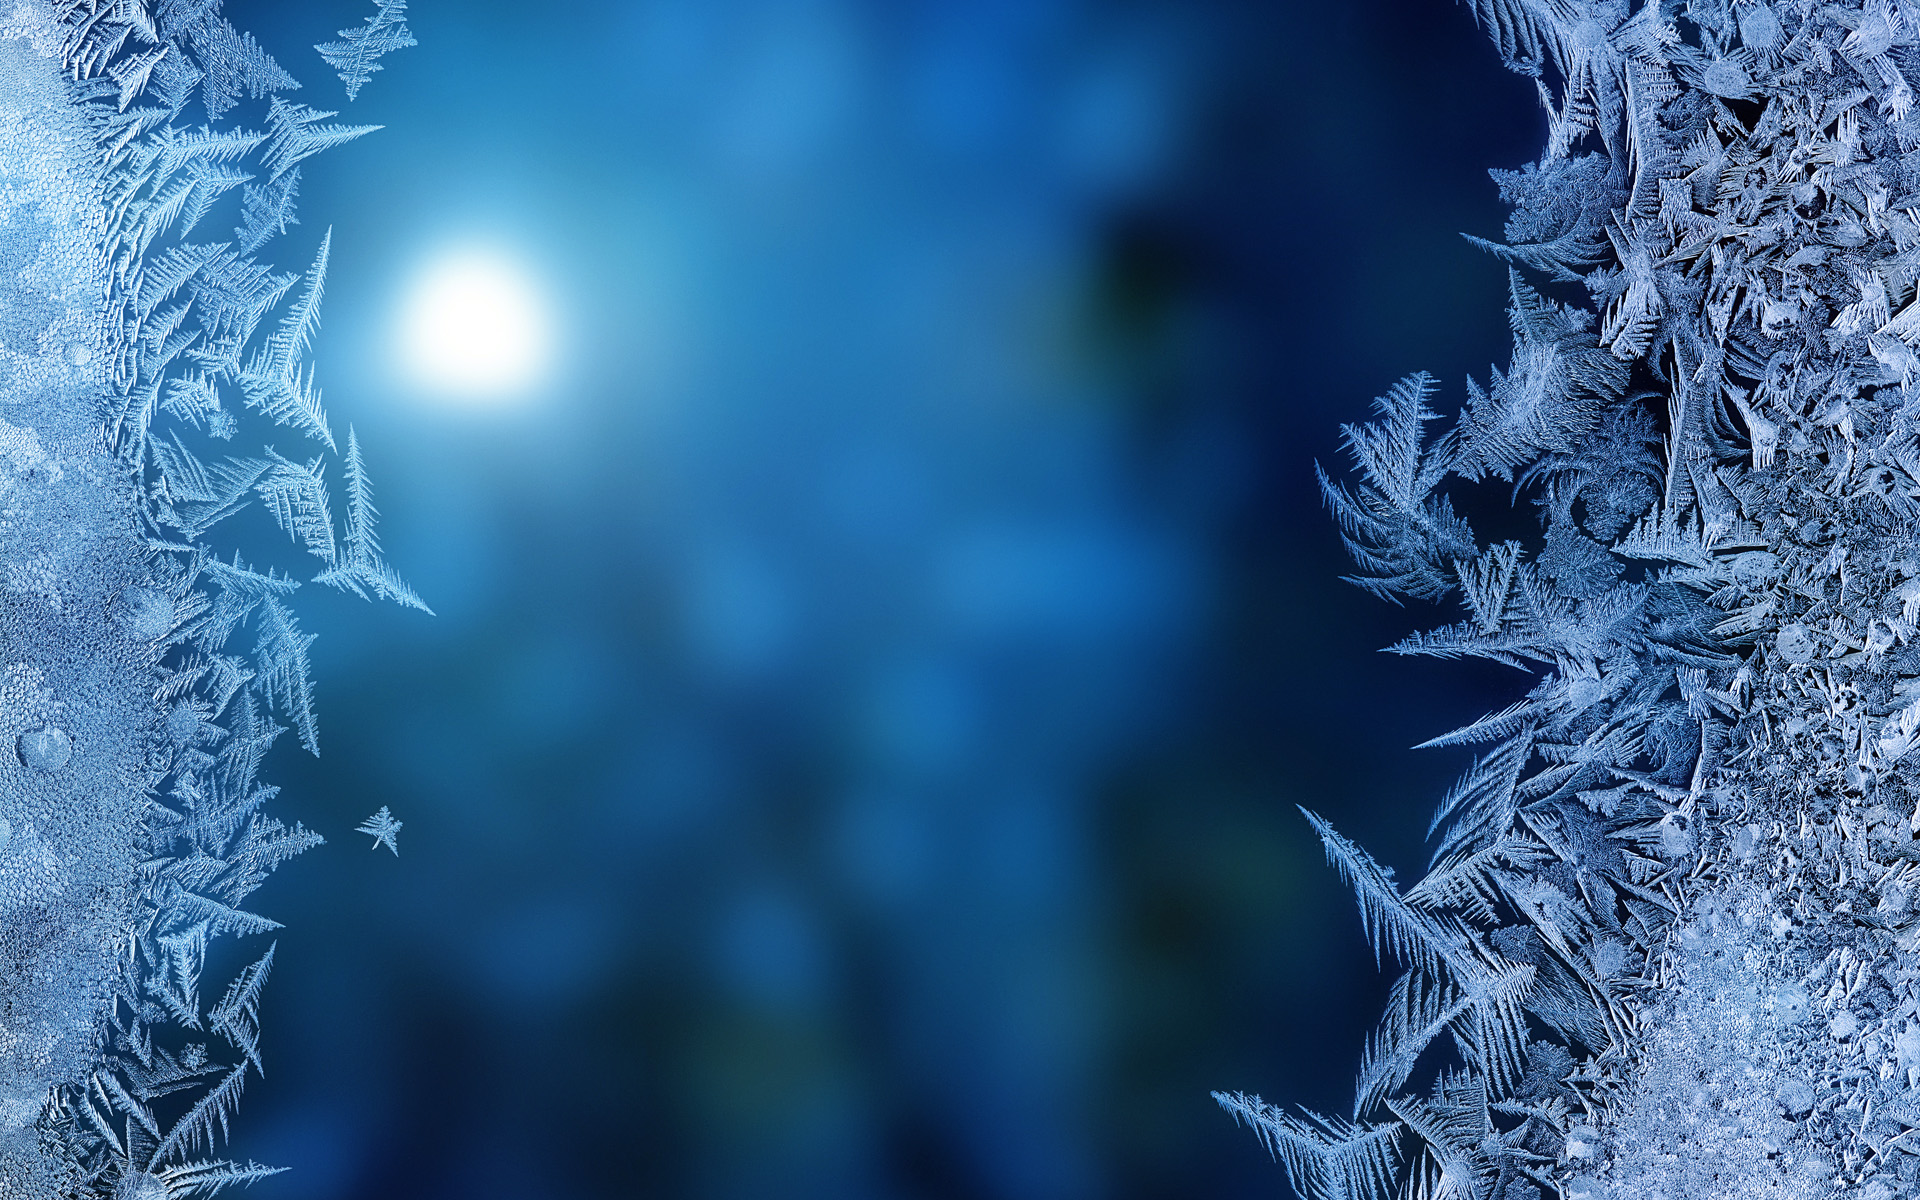 frozen wallpaper 19578 1920x1200 px ~ hdwallsource